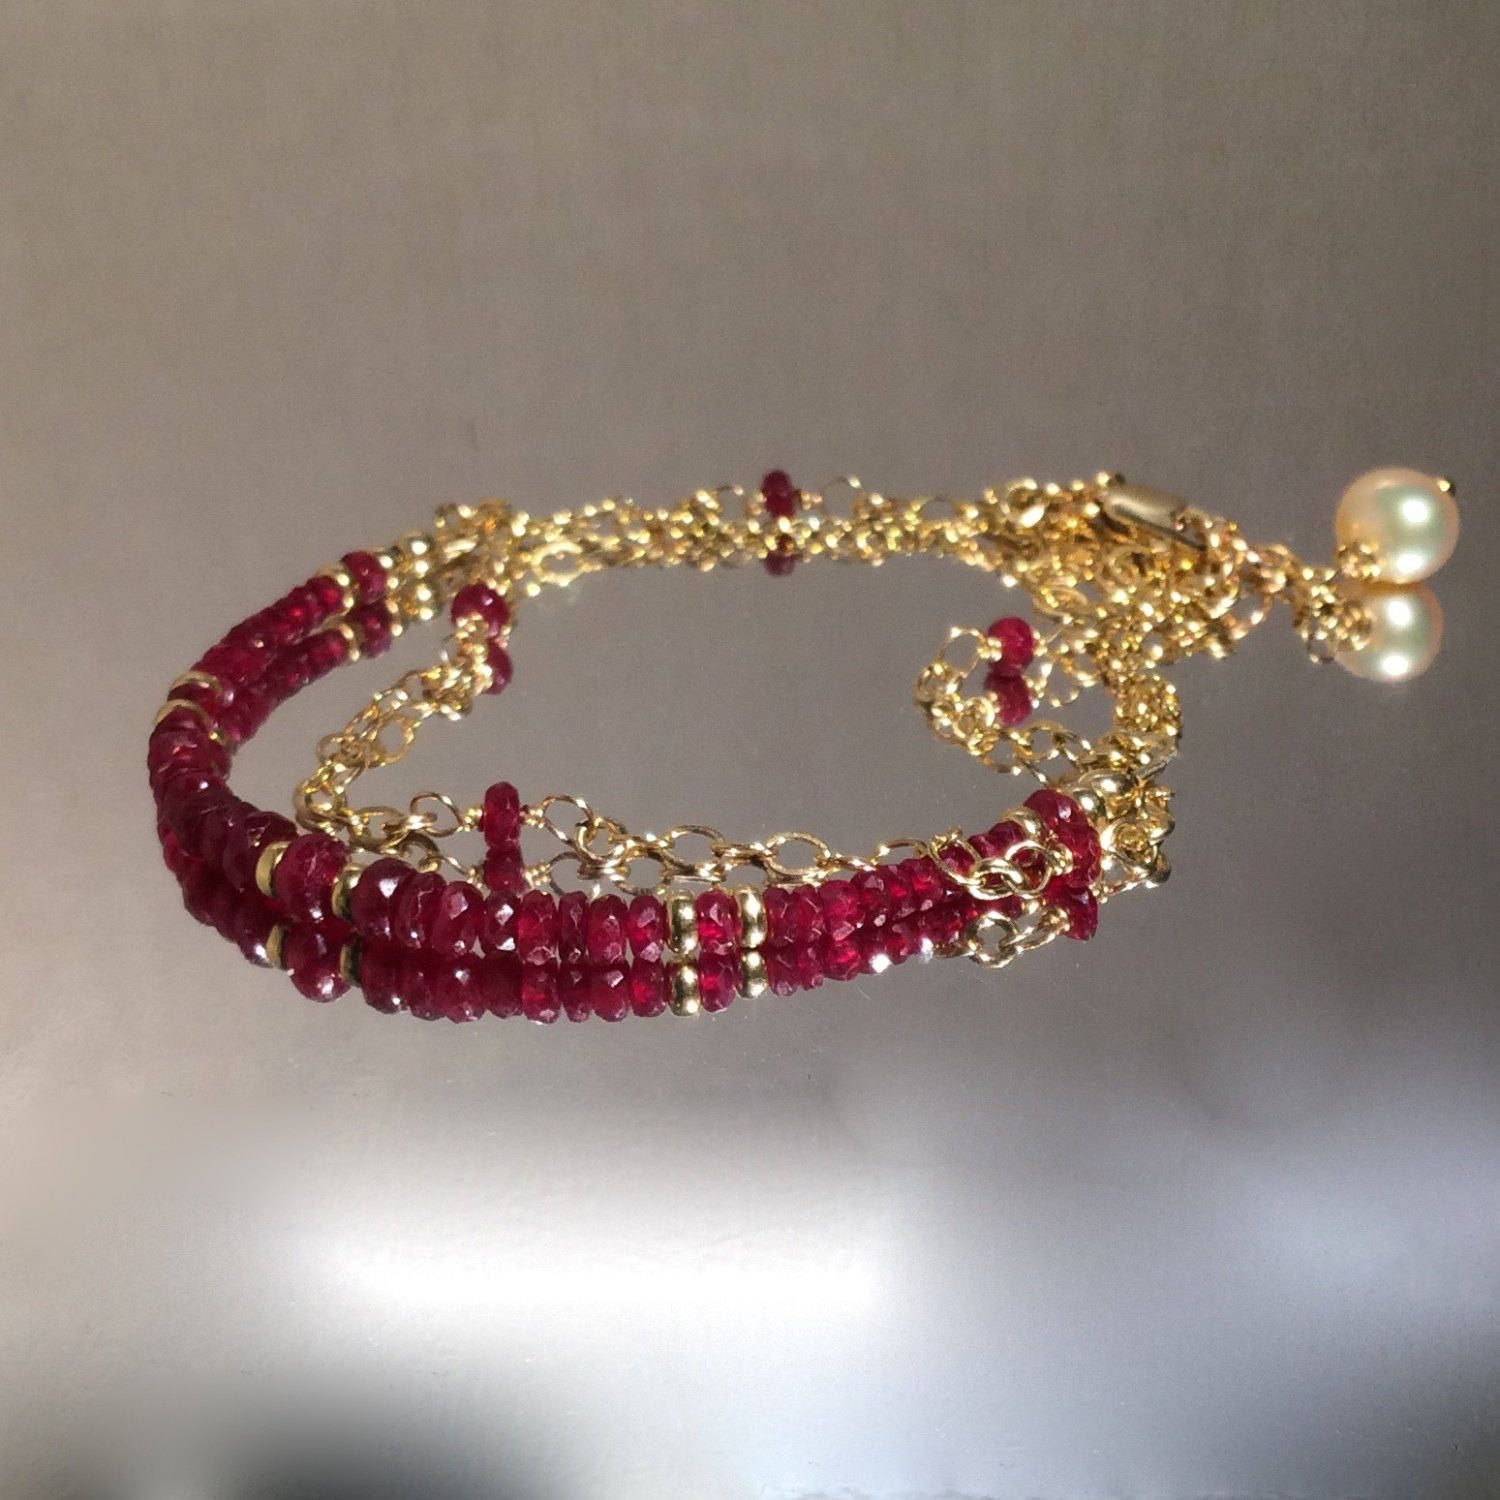 american collection original diamond divinique buy puwai indian new ruby necklace set jewelry bridal look handmade bracelet design real branded id cz wedding